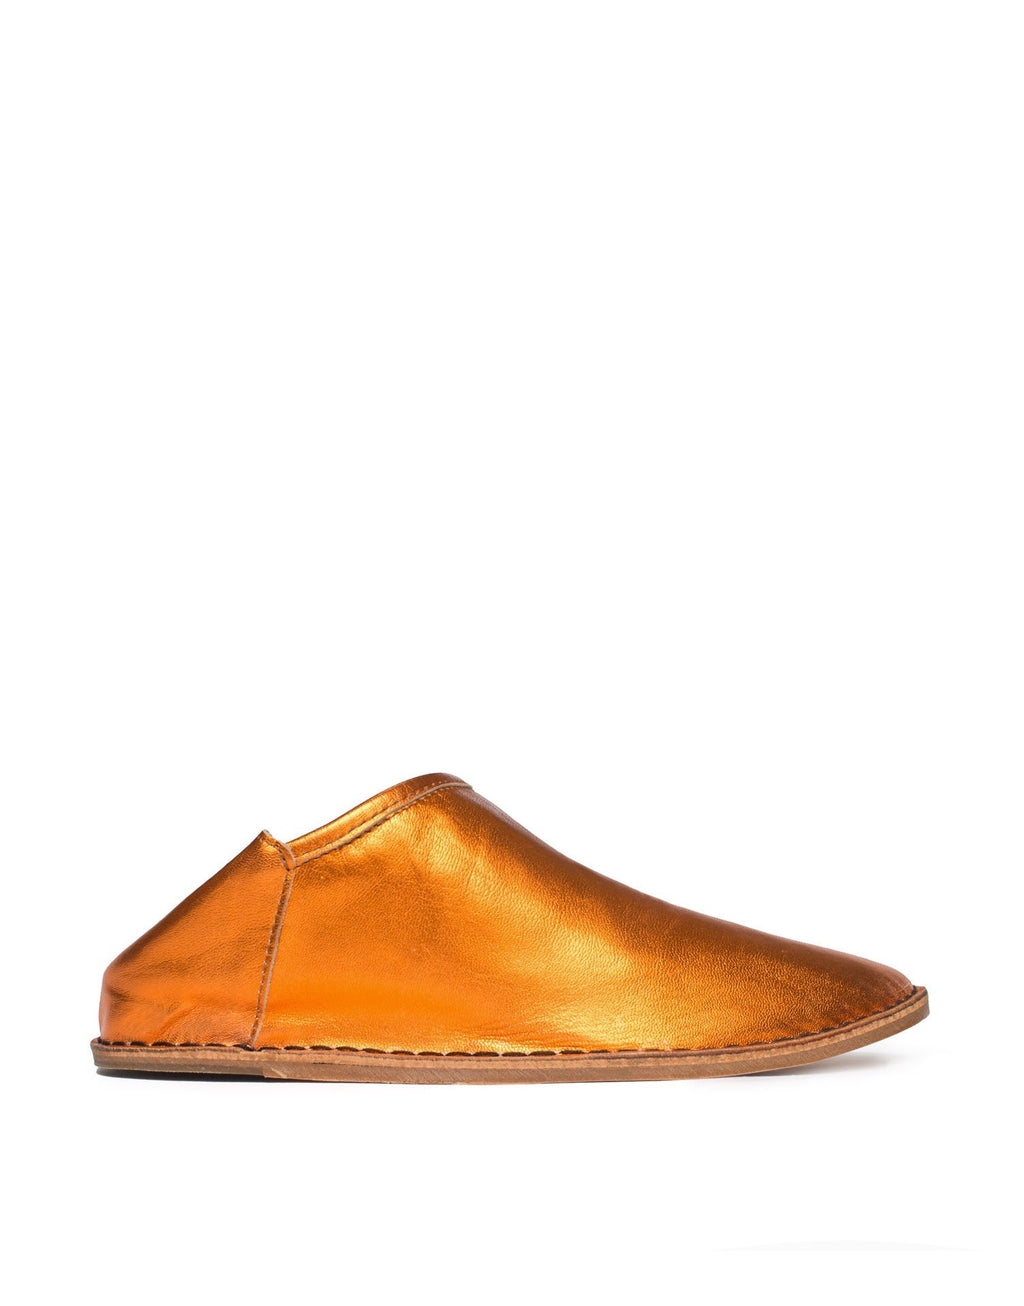 Orange metallic babouche by designer Georgina Goodman